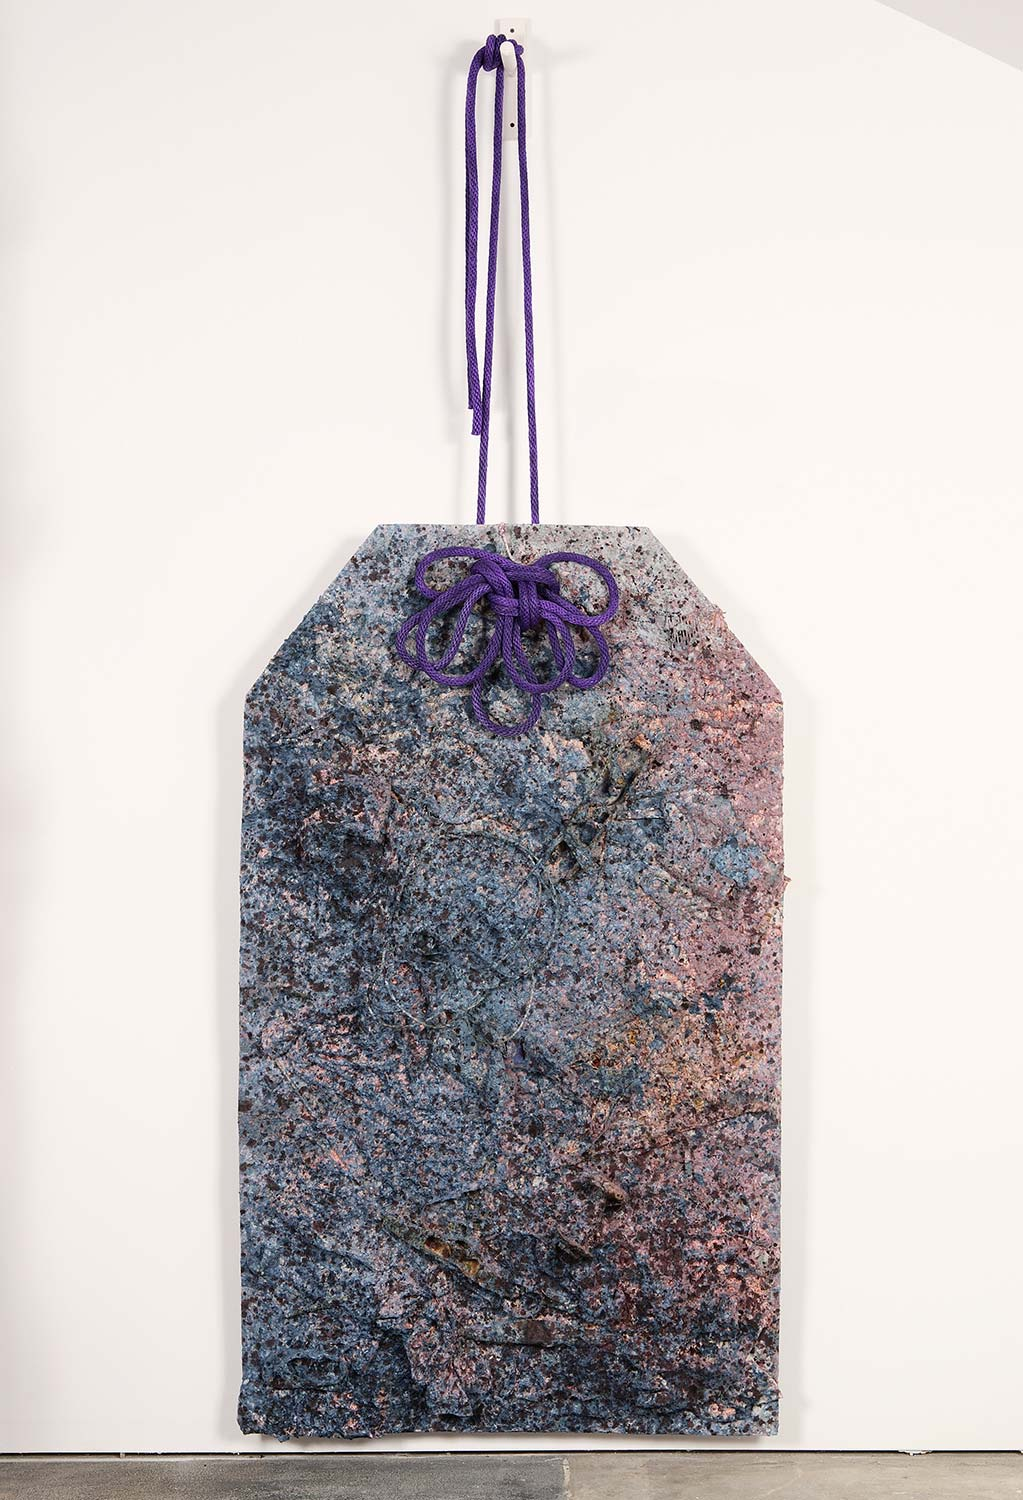 Omamori III: Forgotten  2011, 10'x4'x1' Mixed Media: discarded objects, abaca fiber, natural dyes, and rope